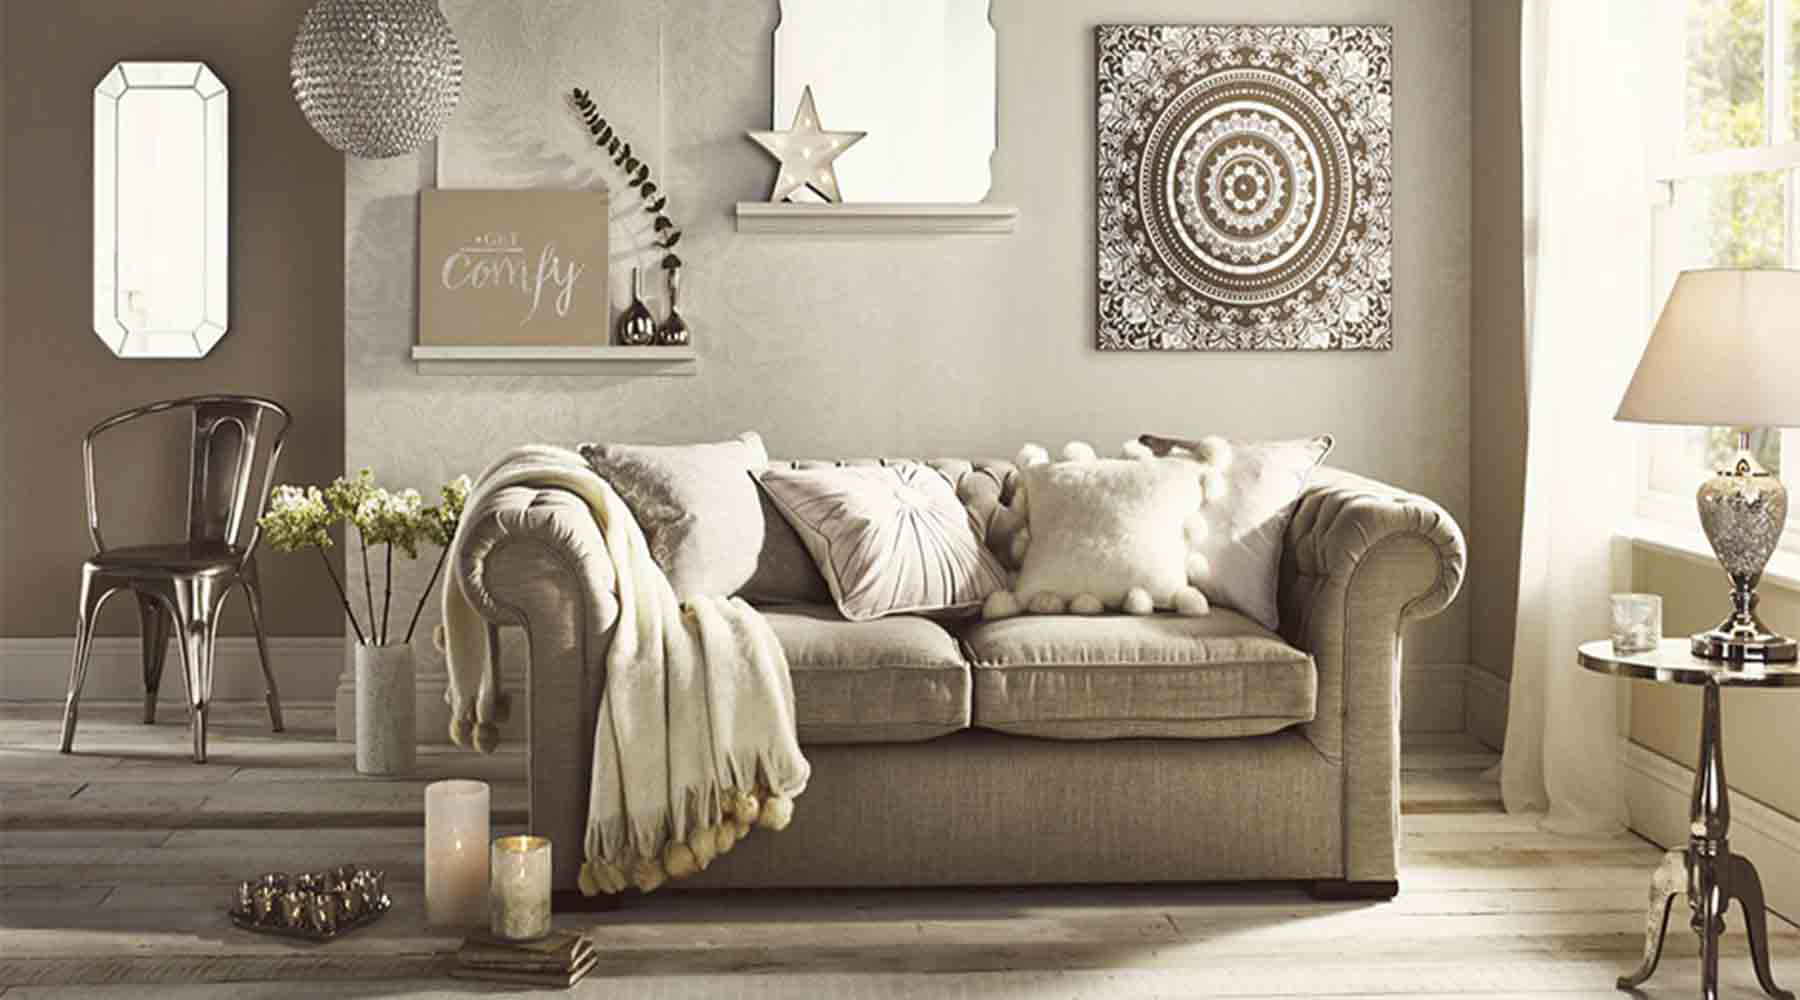 How to Use Soft Furnishings in the Home